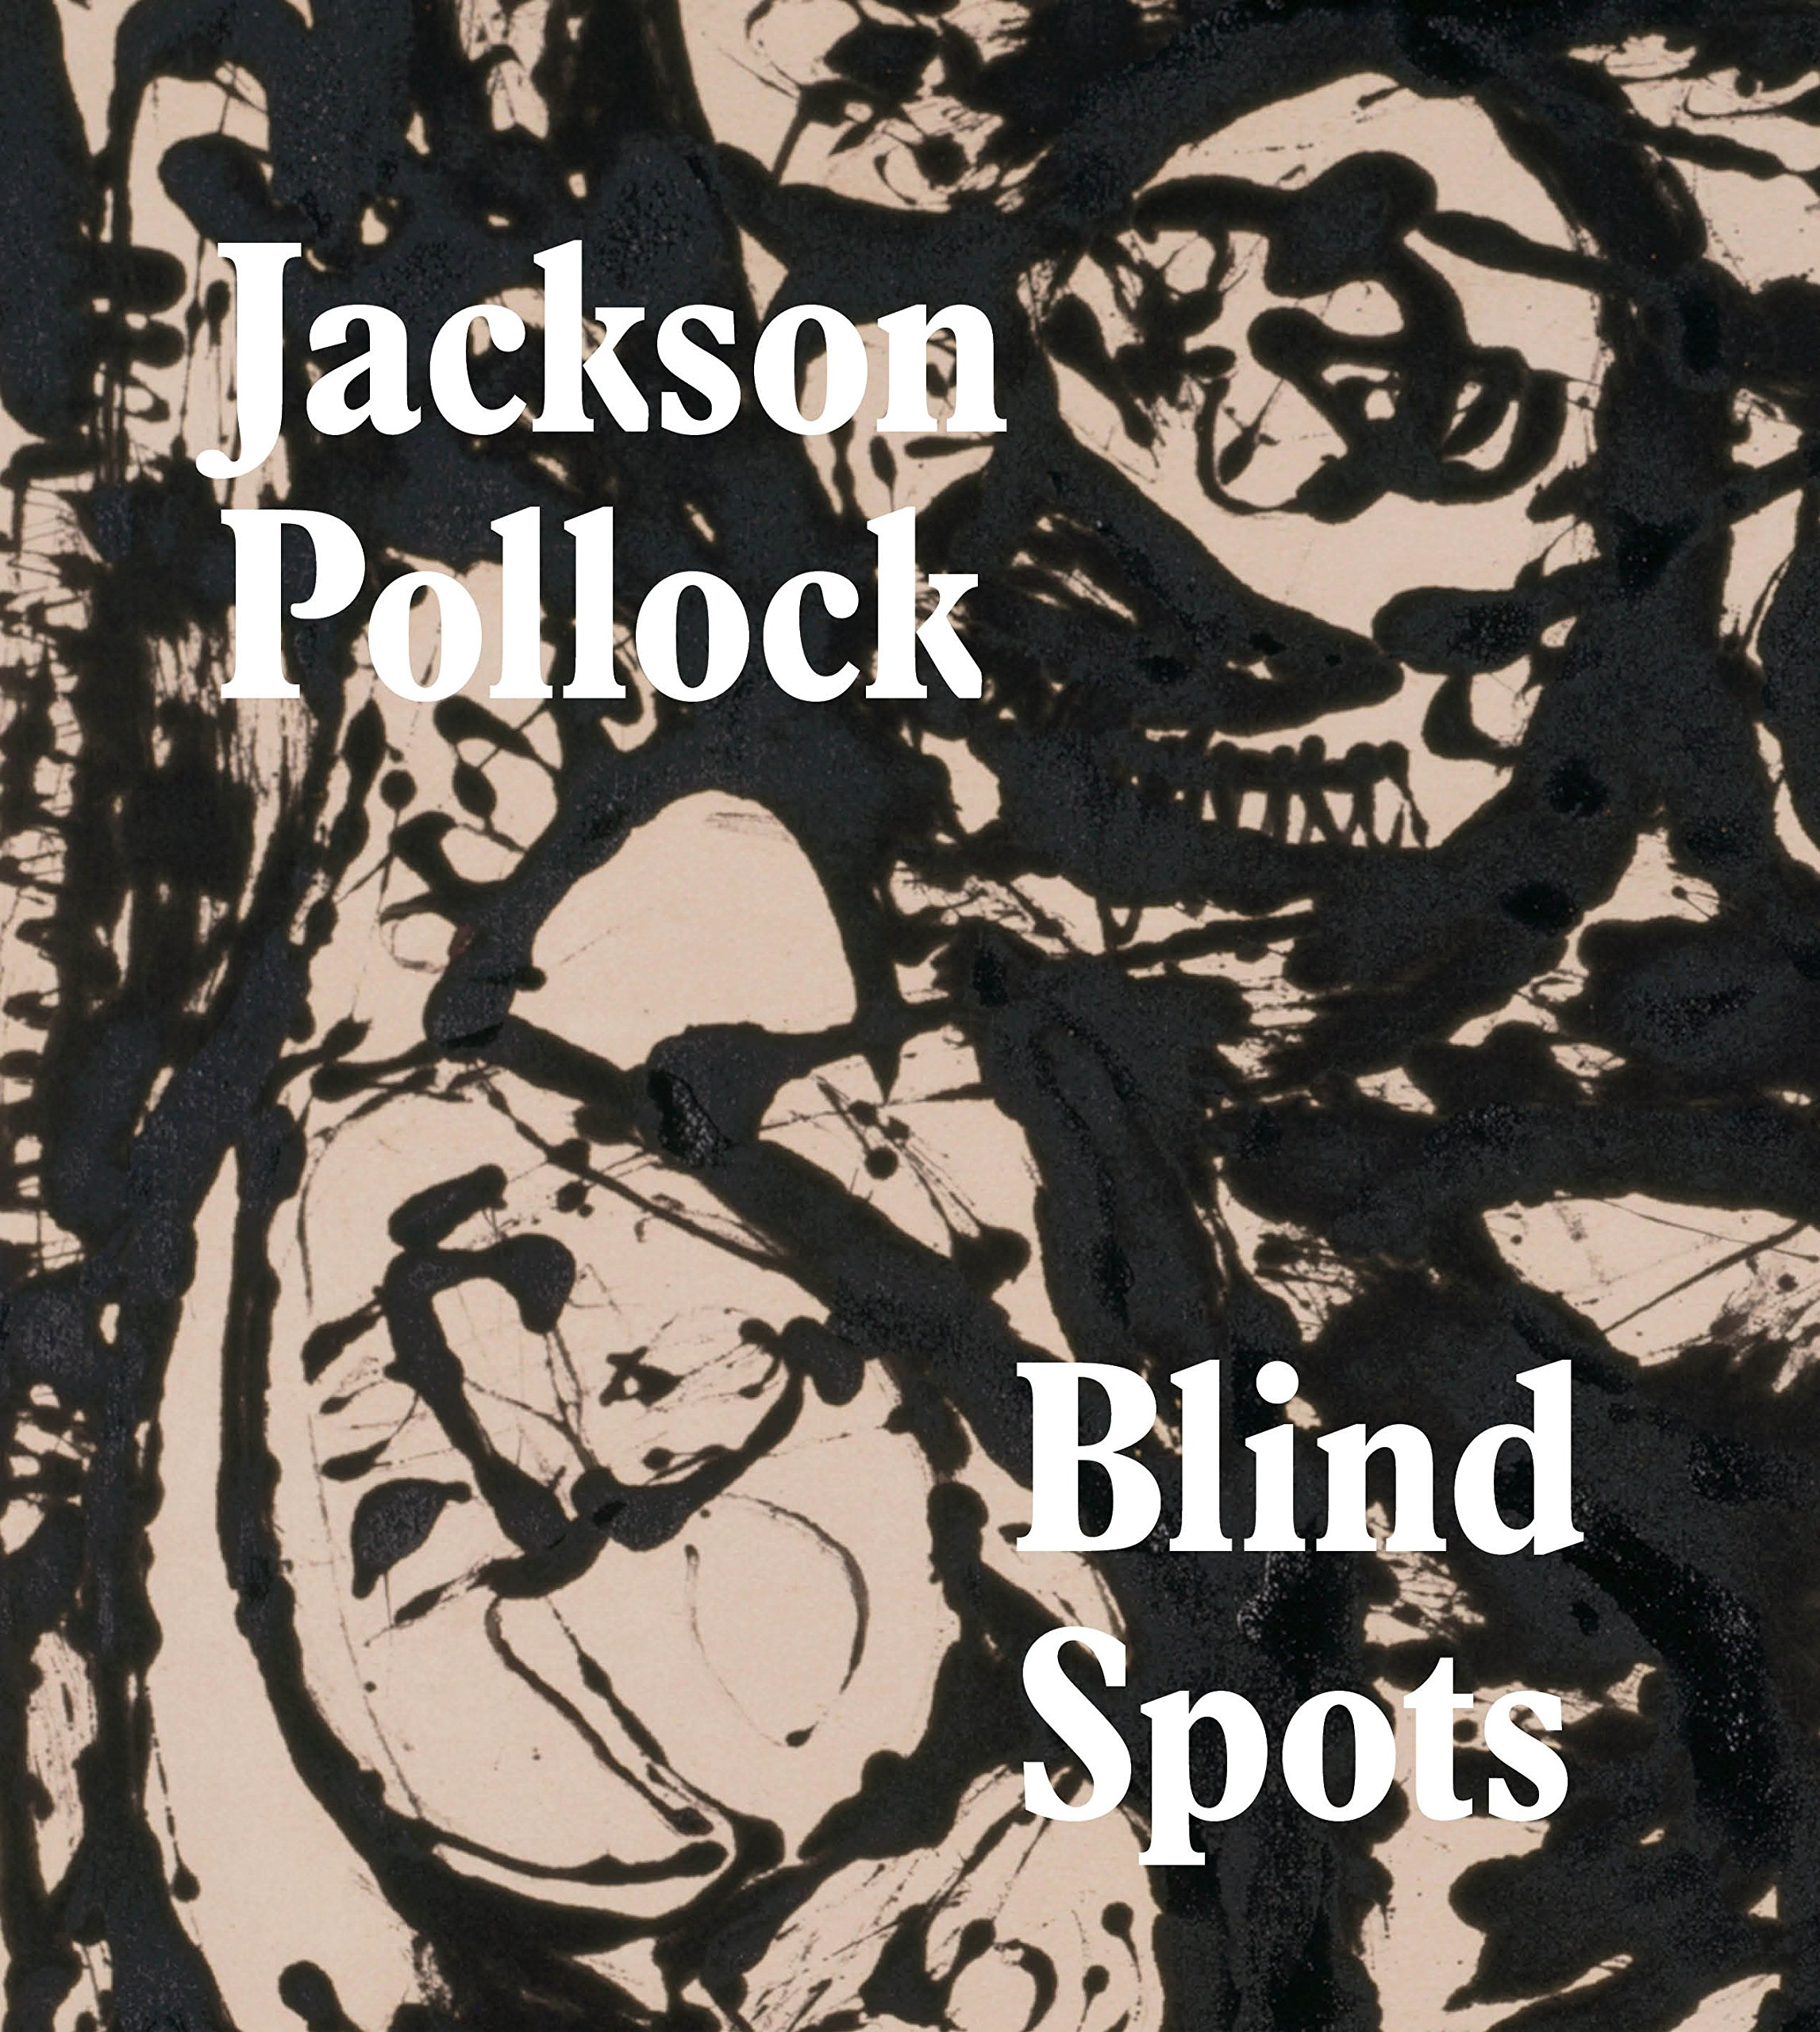 jackson pollock blindspots amazon co uk gavin delahunty jackson pollock blindspots amazon co uk gavin delahunty 9781849763325 books